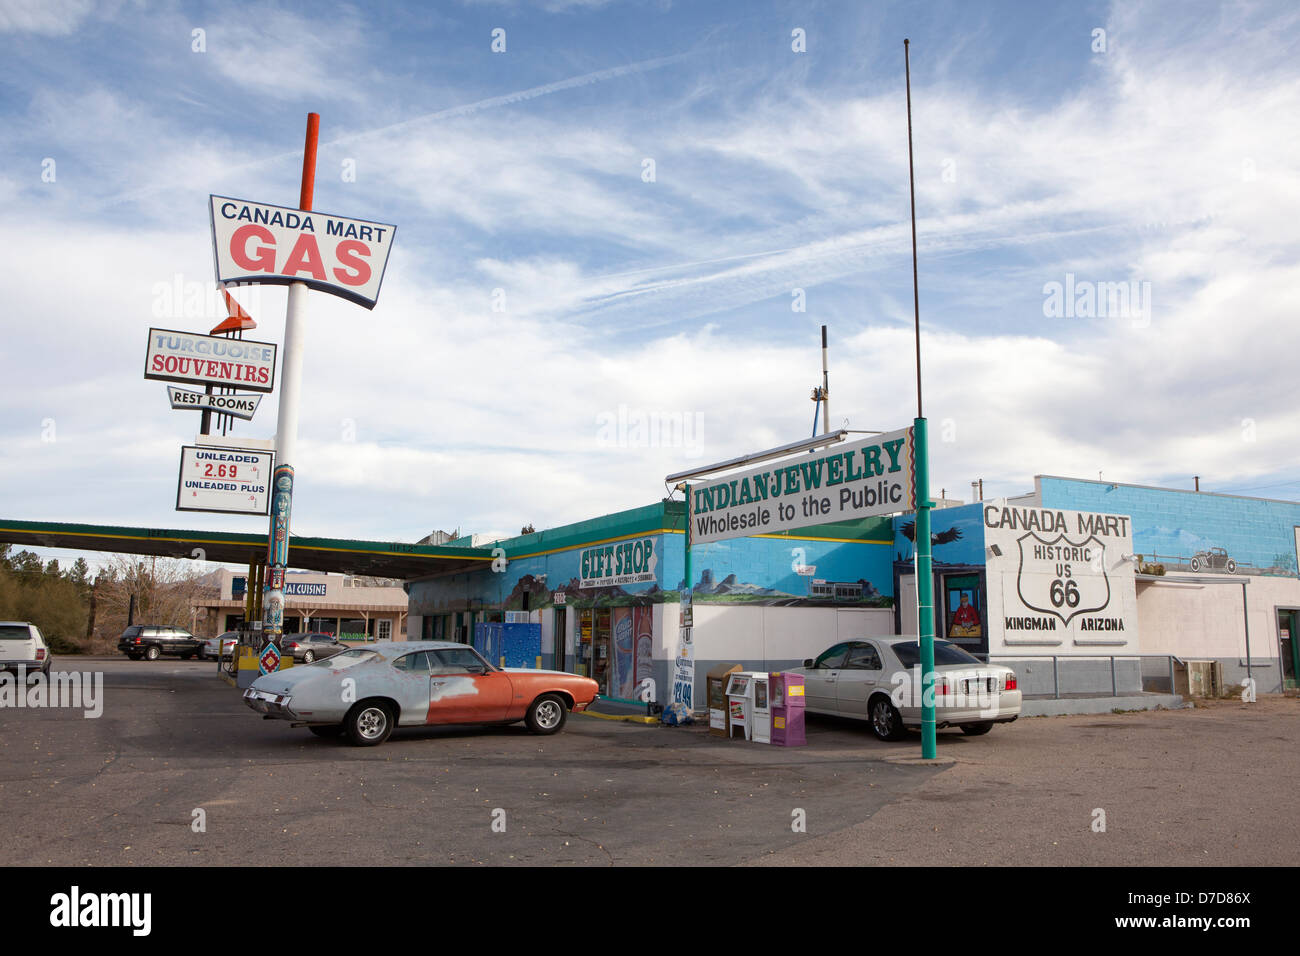 car mart stock photos & car mart stock images - alamy